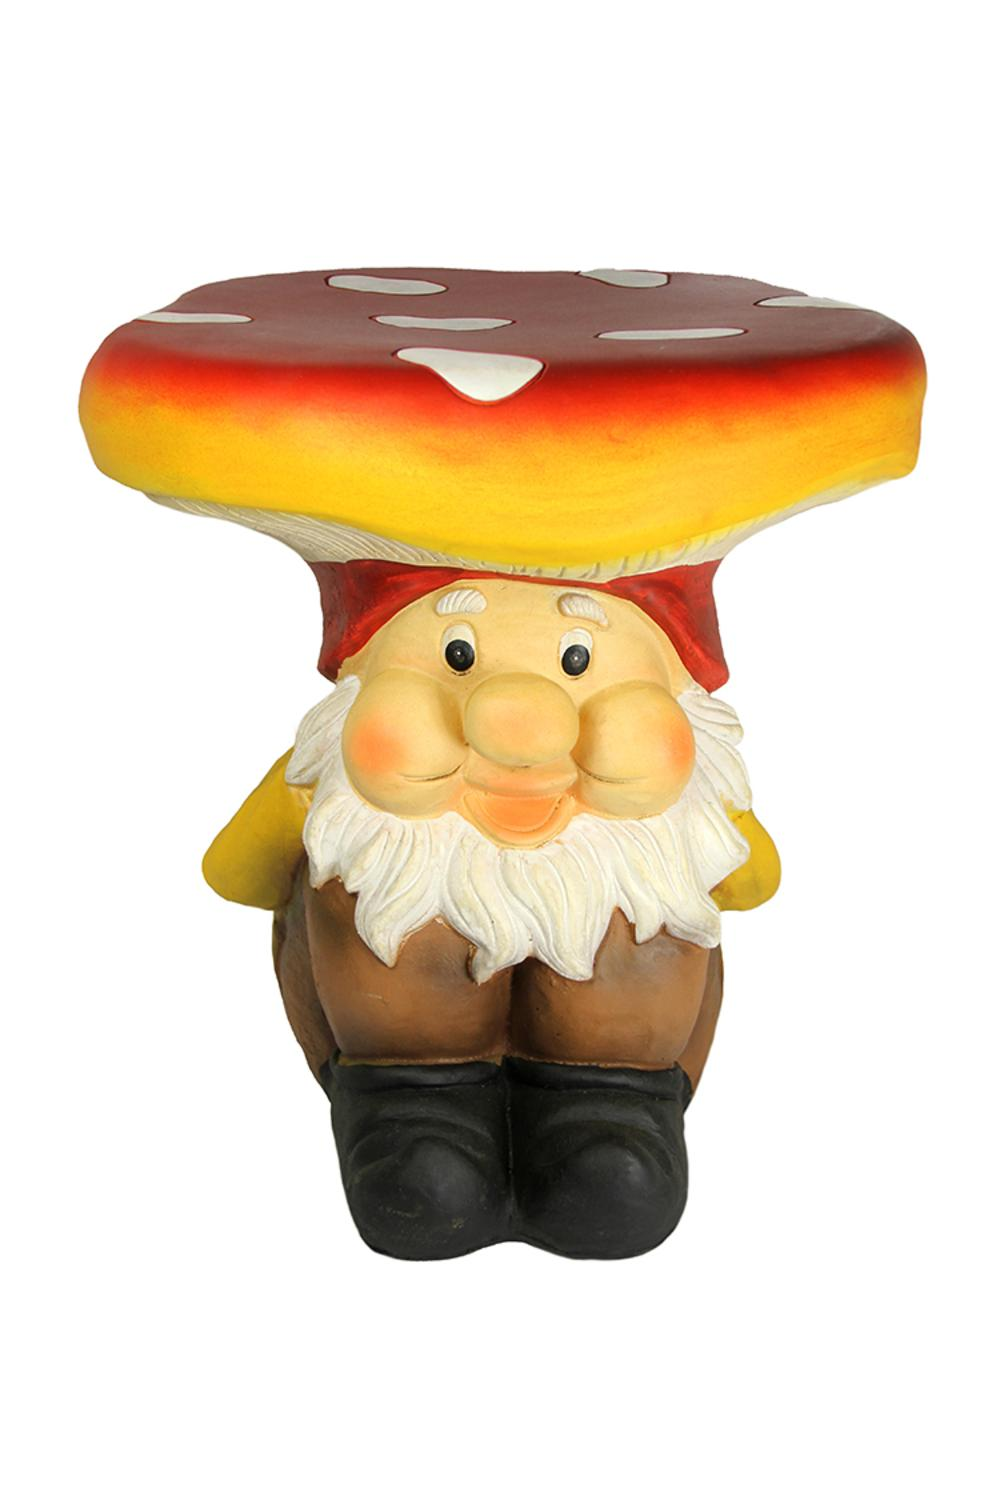 3 Piece Jolly Gnome Table And Chair Novelty Garden